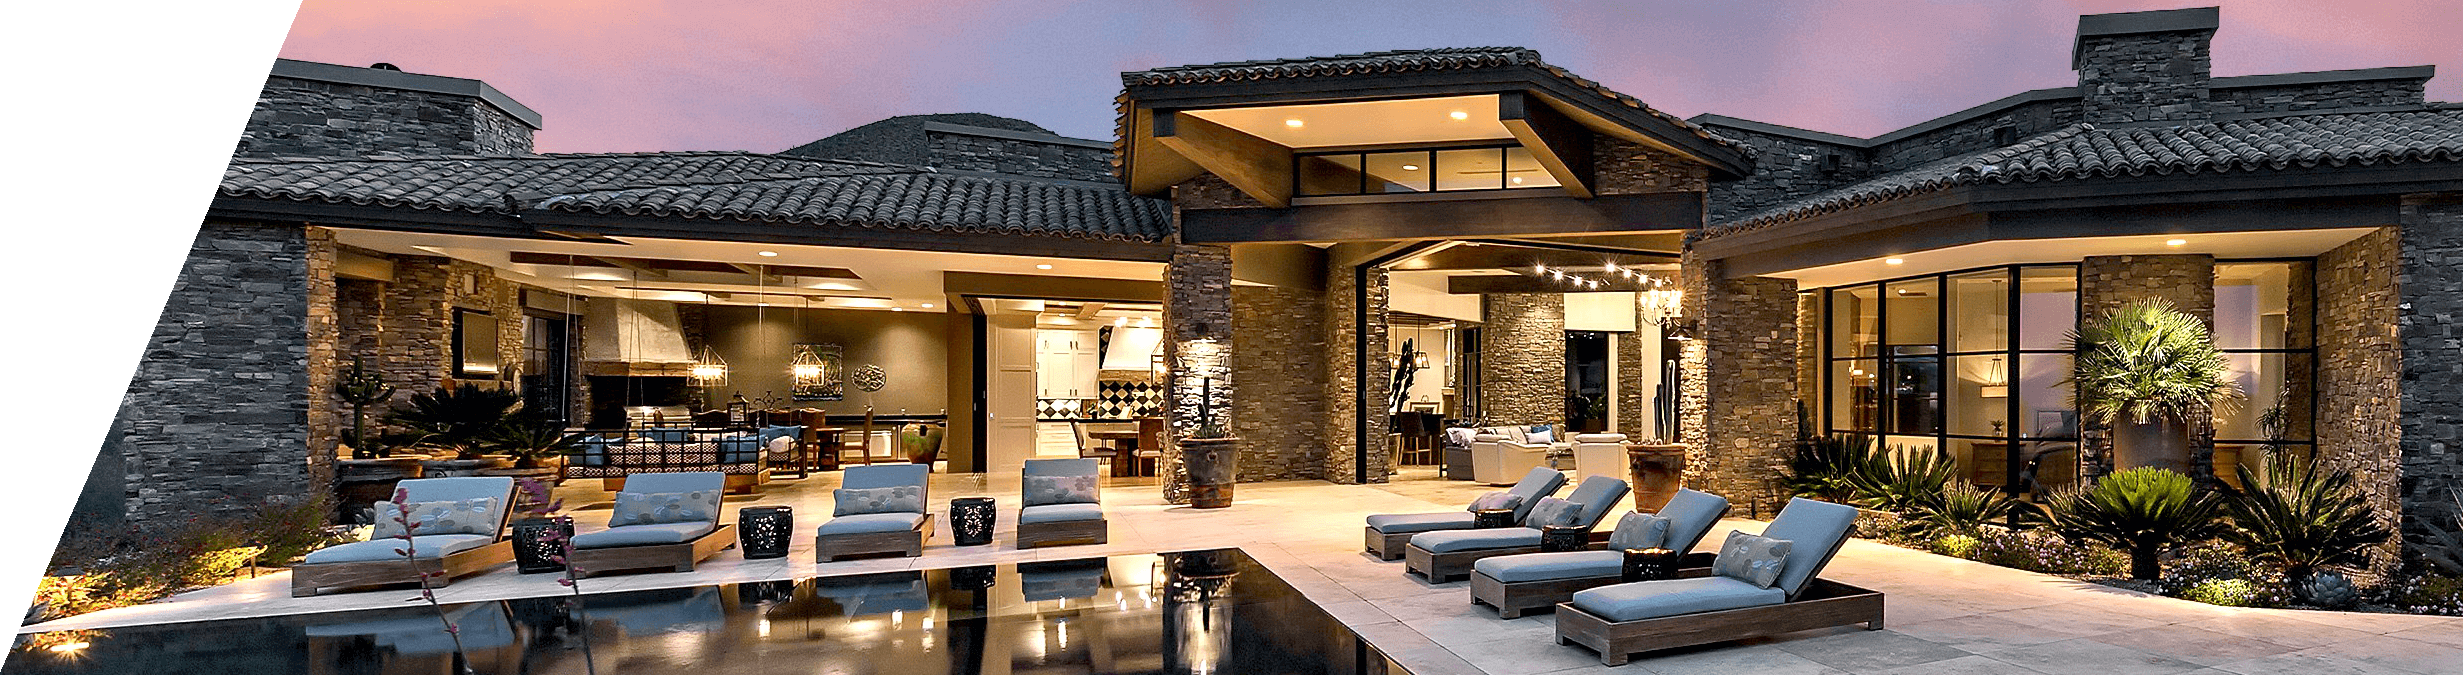 Luxury Arizona